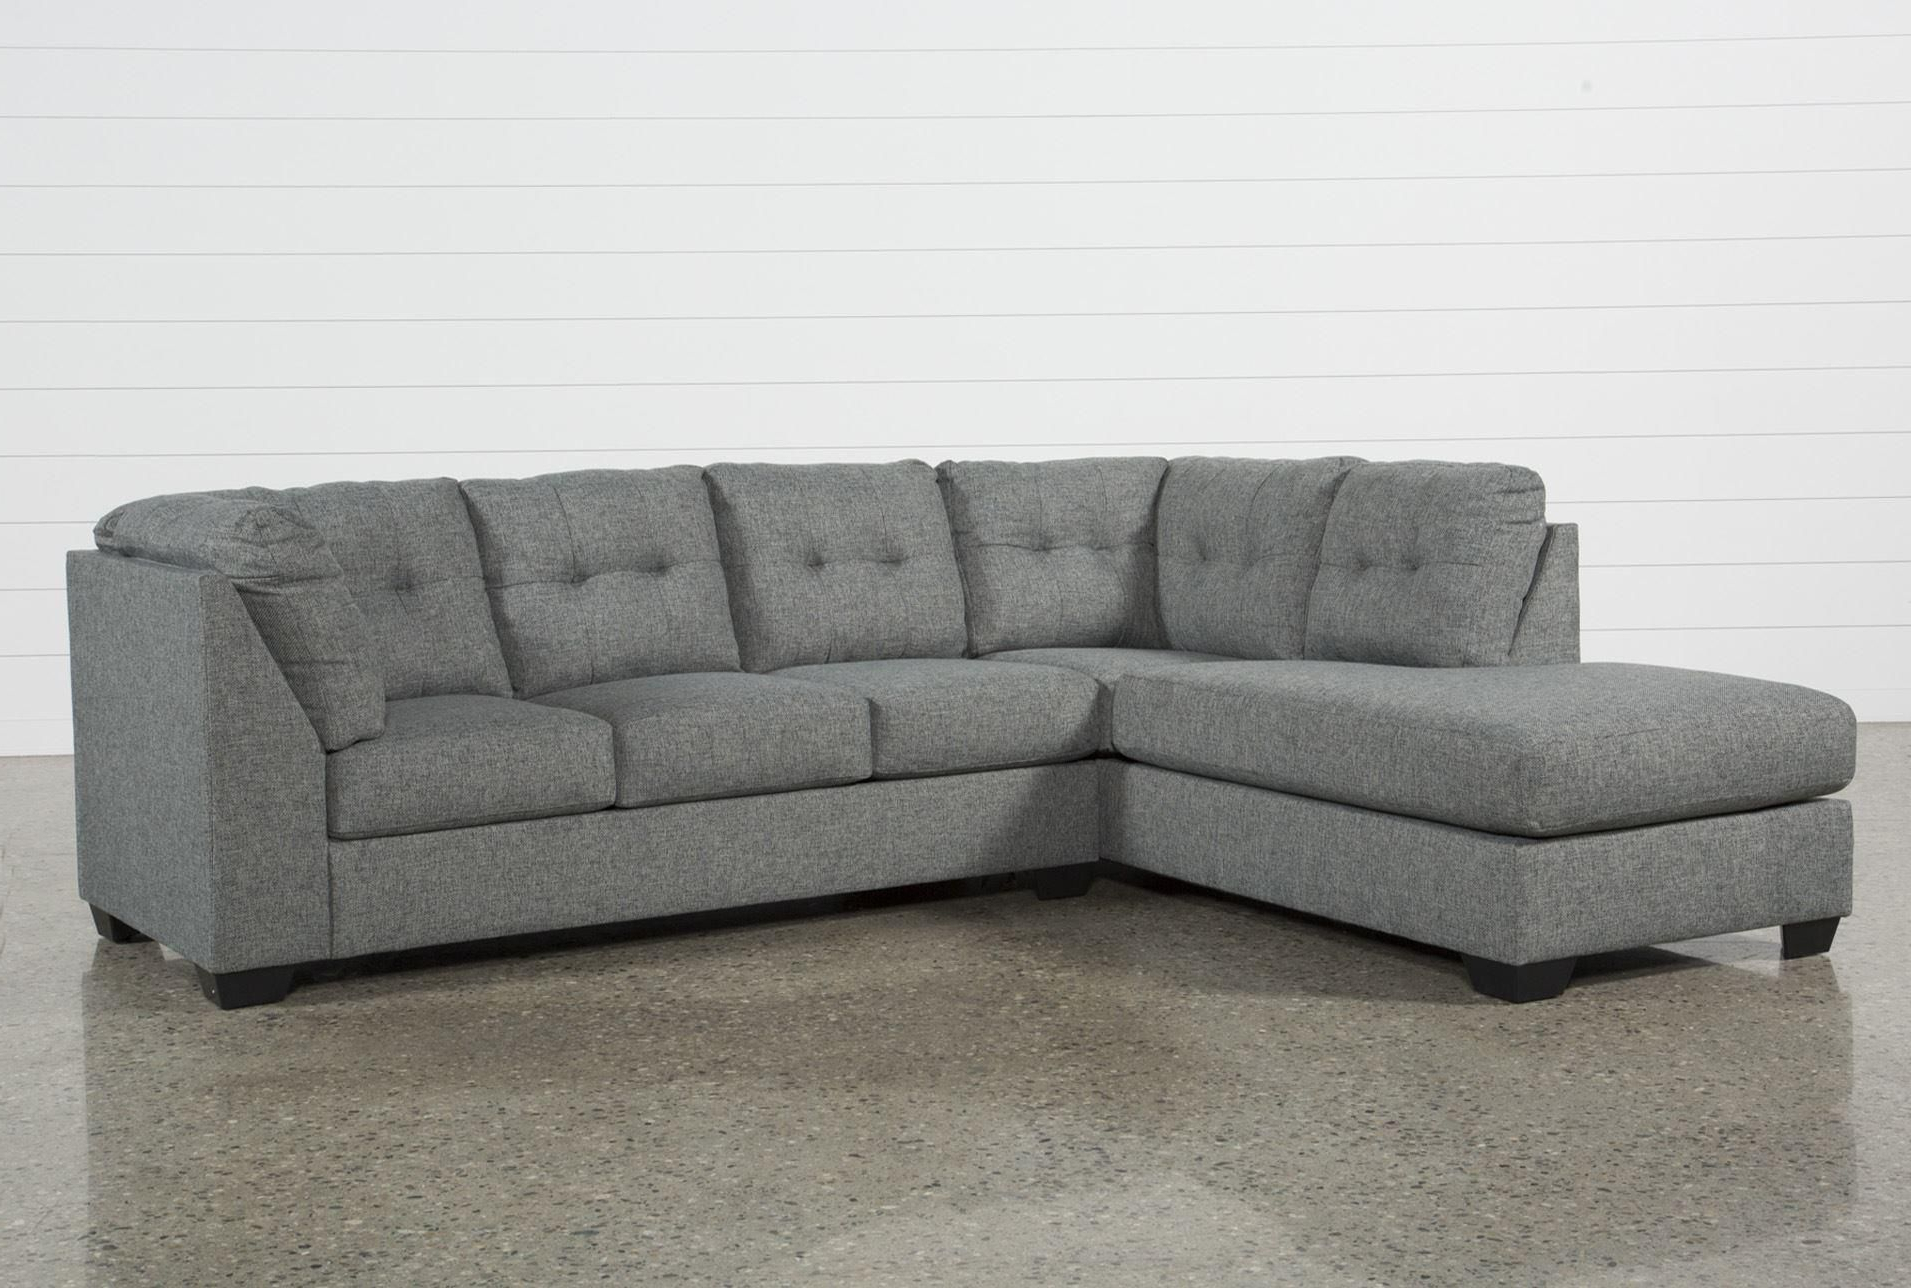 2019 Lucy Dark Grey 2 Piece Sleeper Sectionals With Raf Chaise With Regard To Arrowmask 2 Piece Sectional W/sleeper & Left Facing Chaise (Gallery 11 of 20)